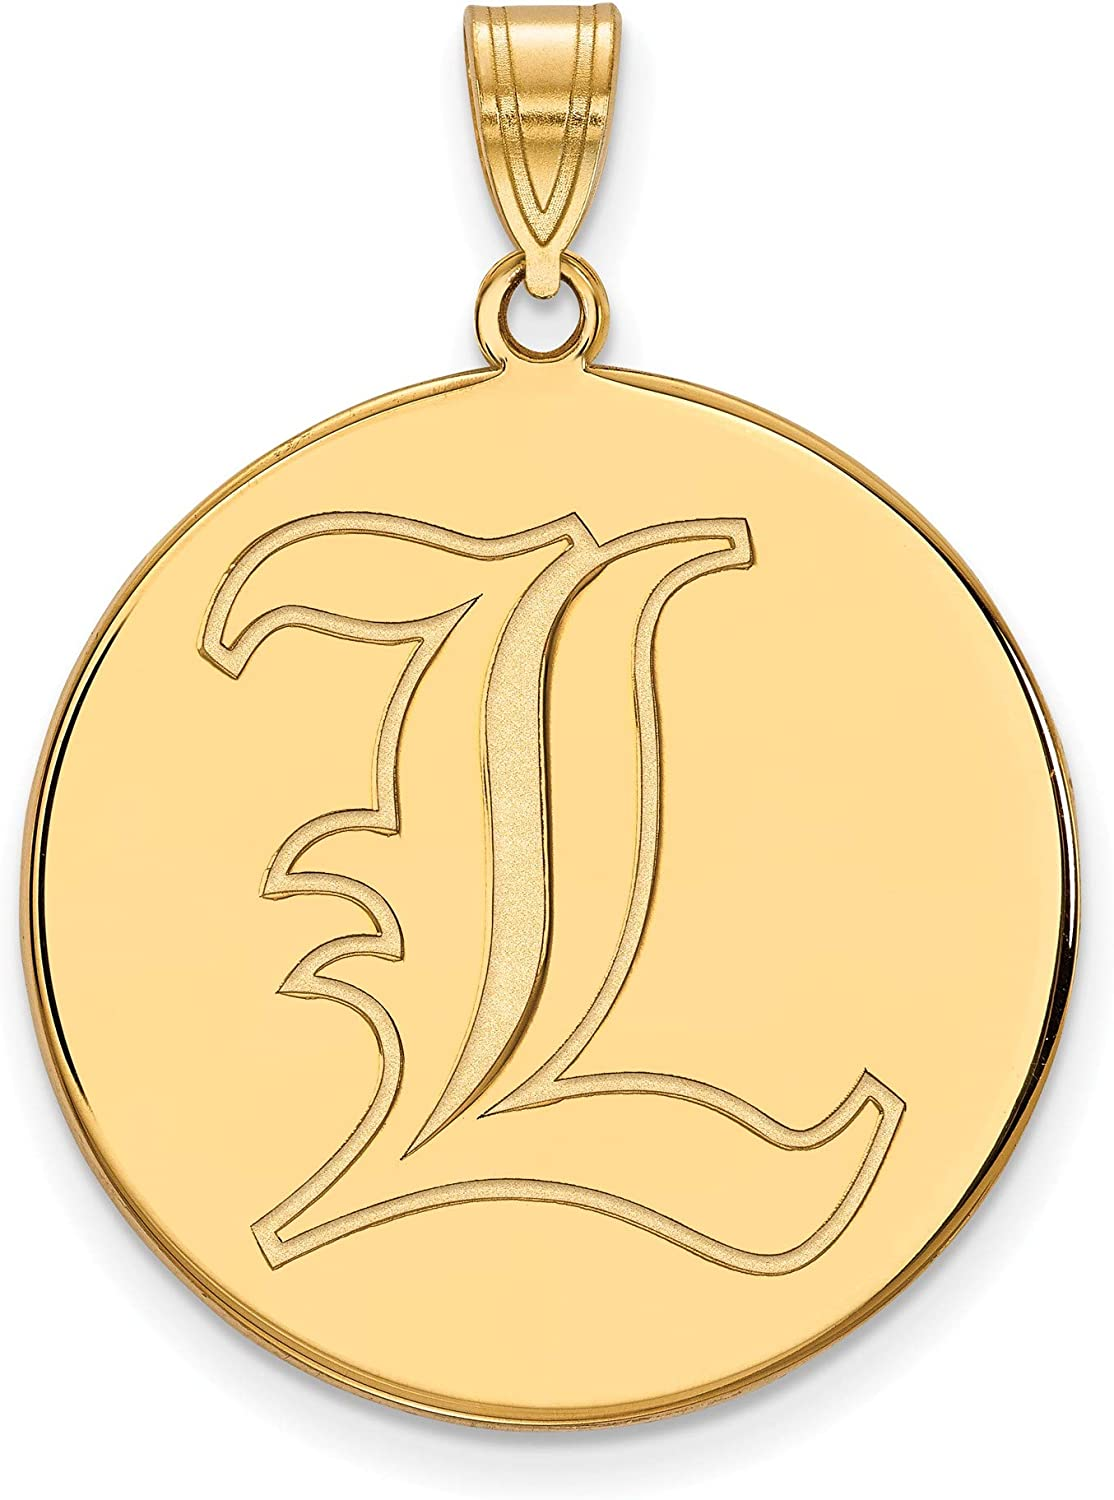 Kira Riley Gold Plated University of Louisville XL Disc Pendant for Chains and Necklaces